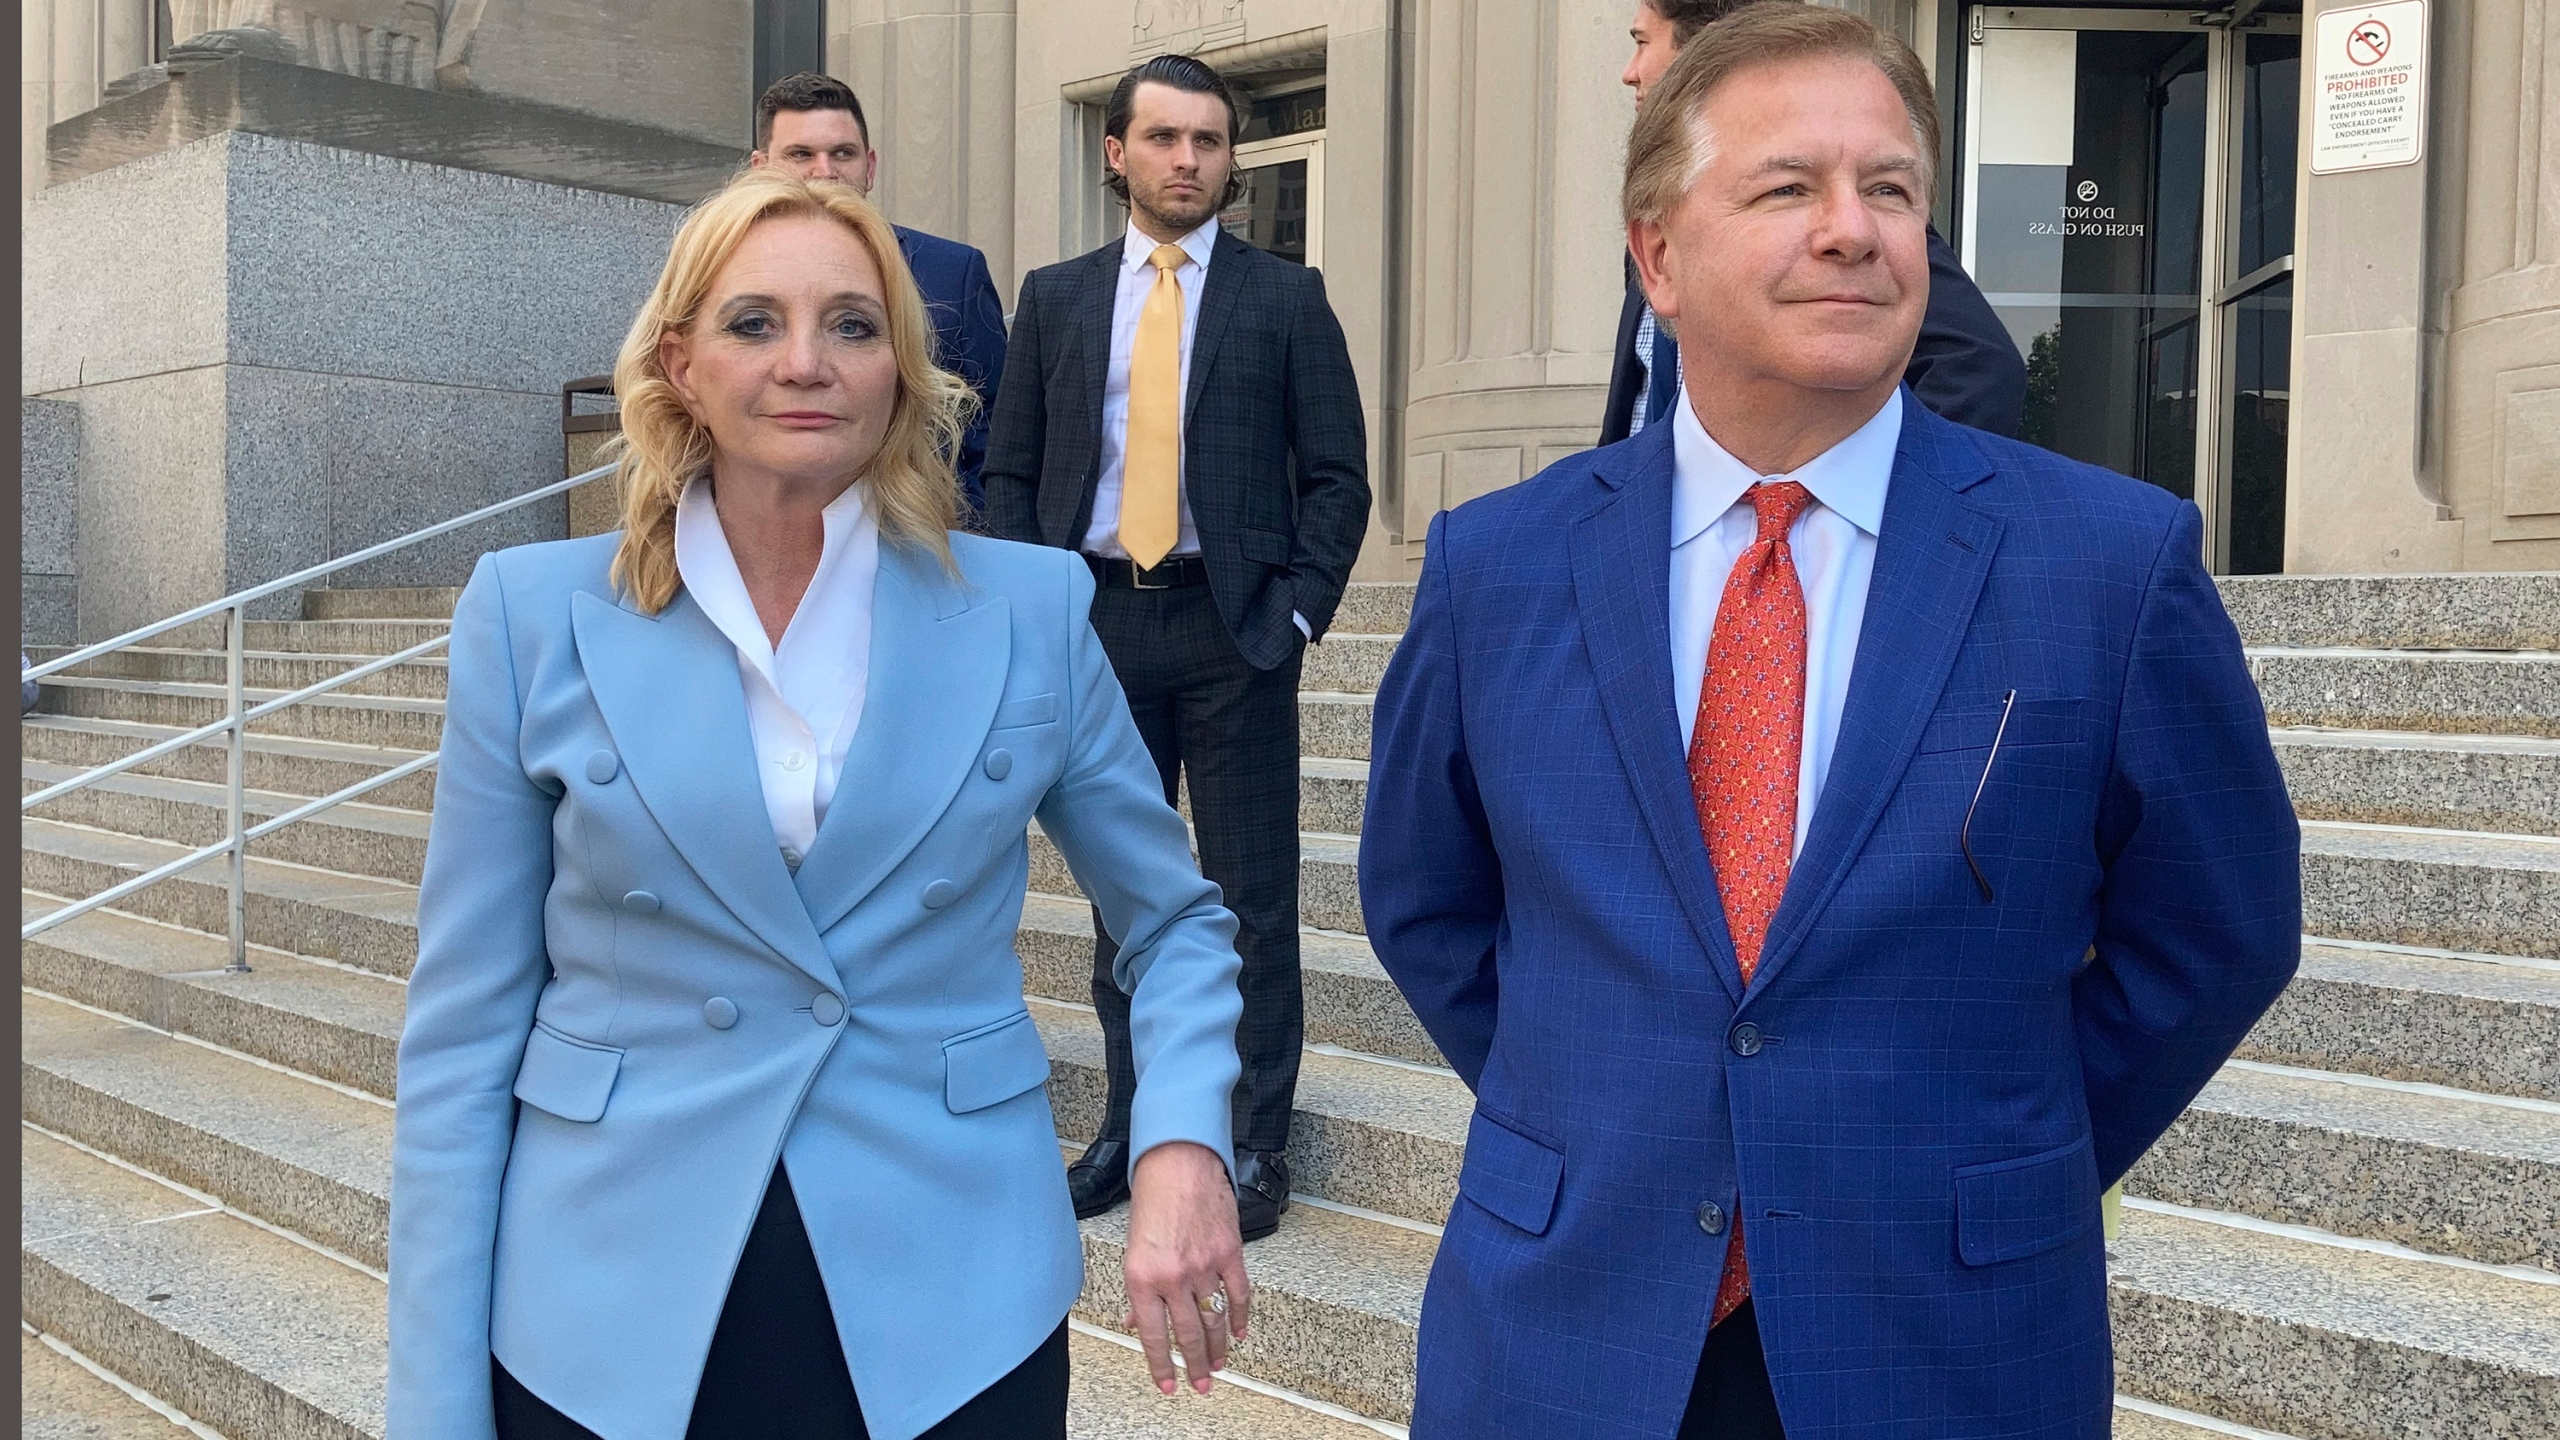 Patricia McCloskey, left, and her husband Mark McCloskey leave a court in St. Louis on June 17, 2021. (Jim Salter/Associated Press)